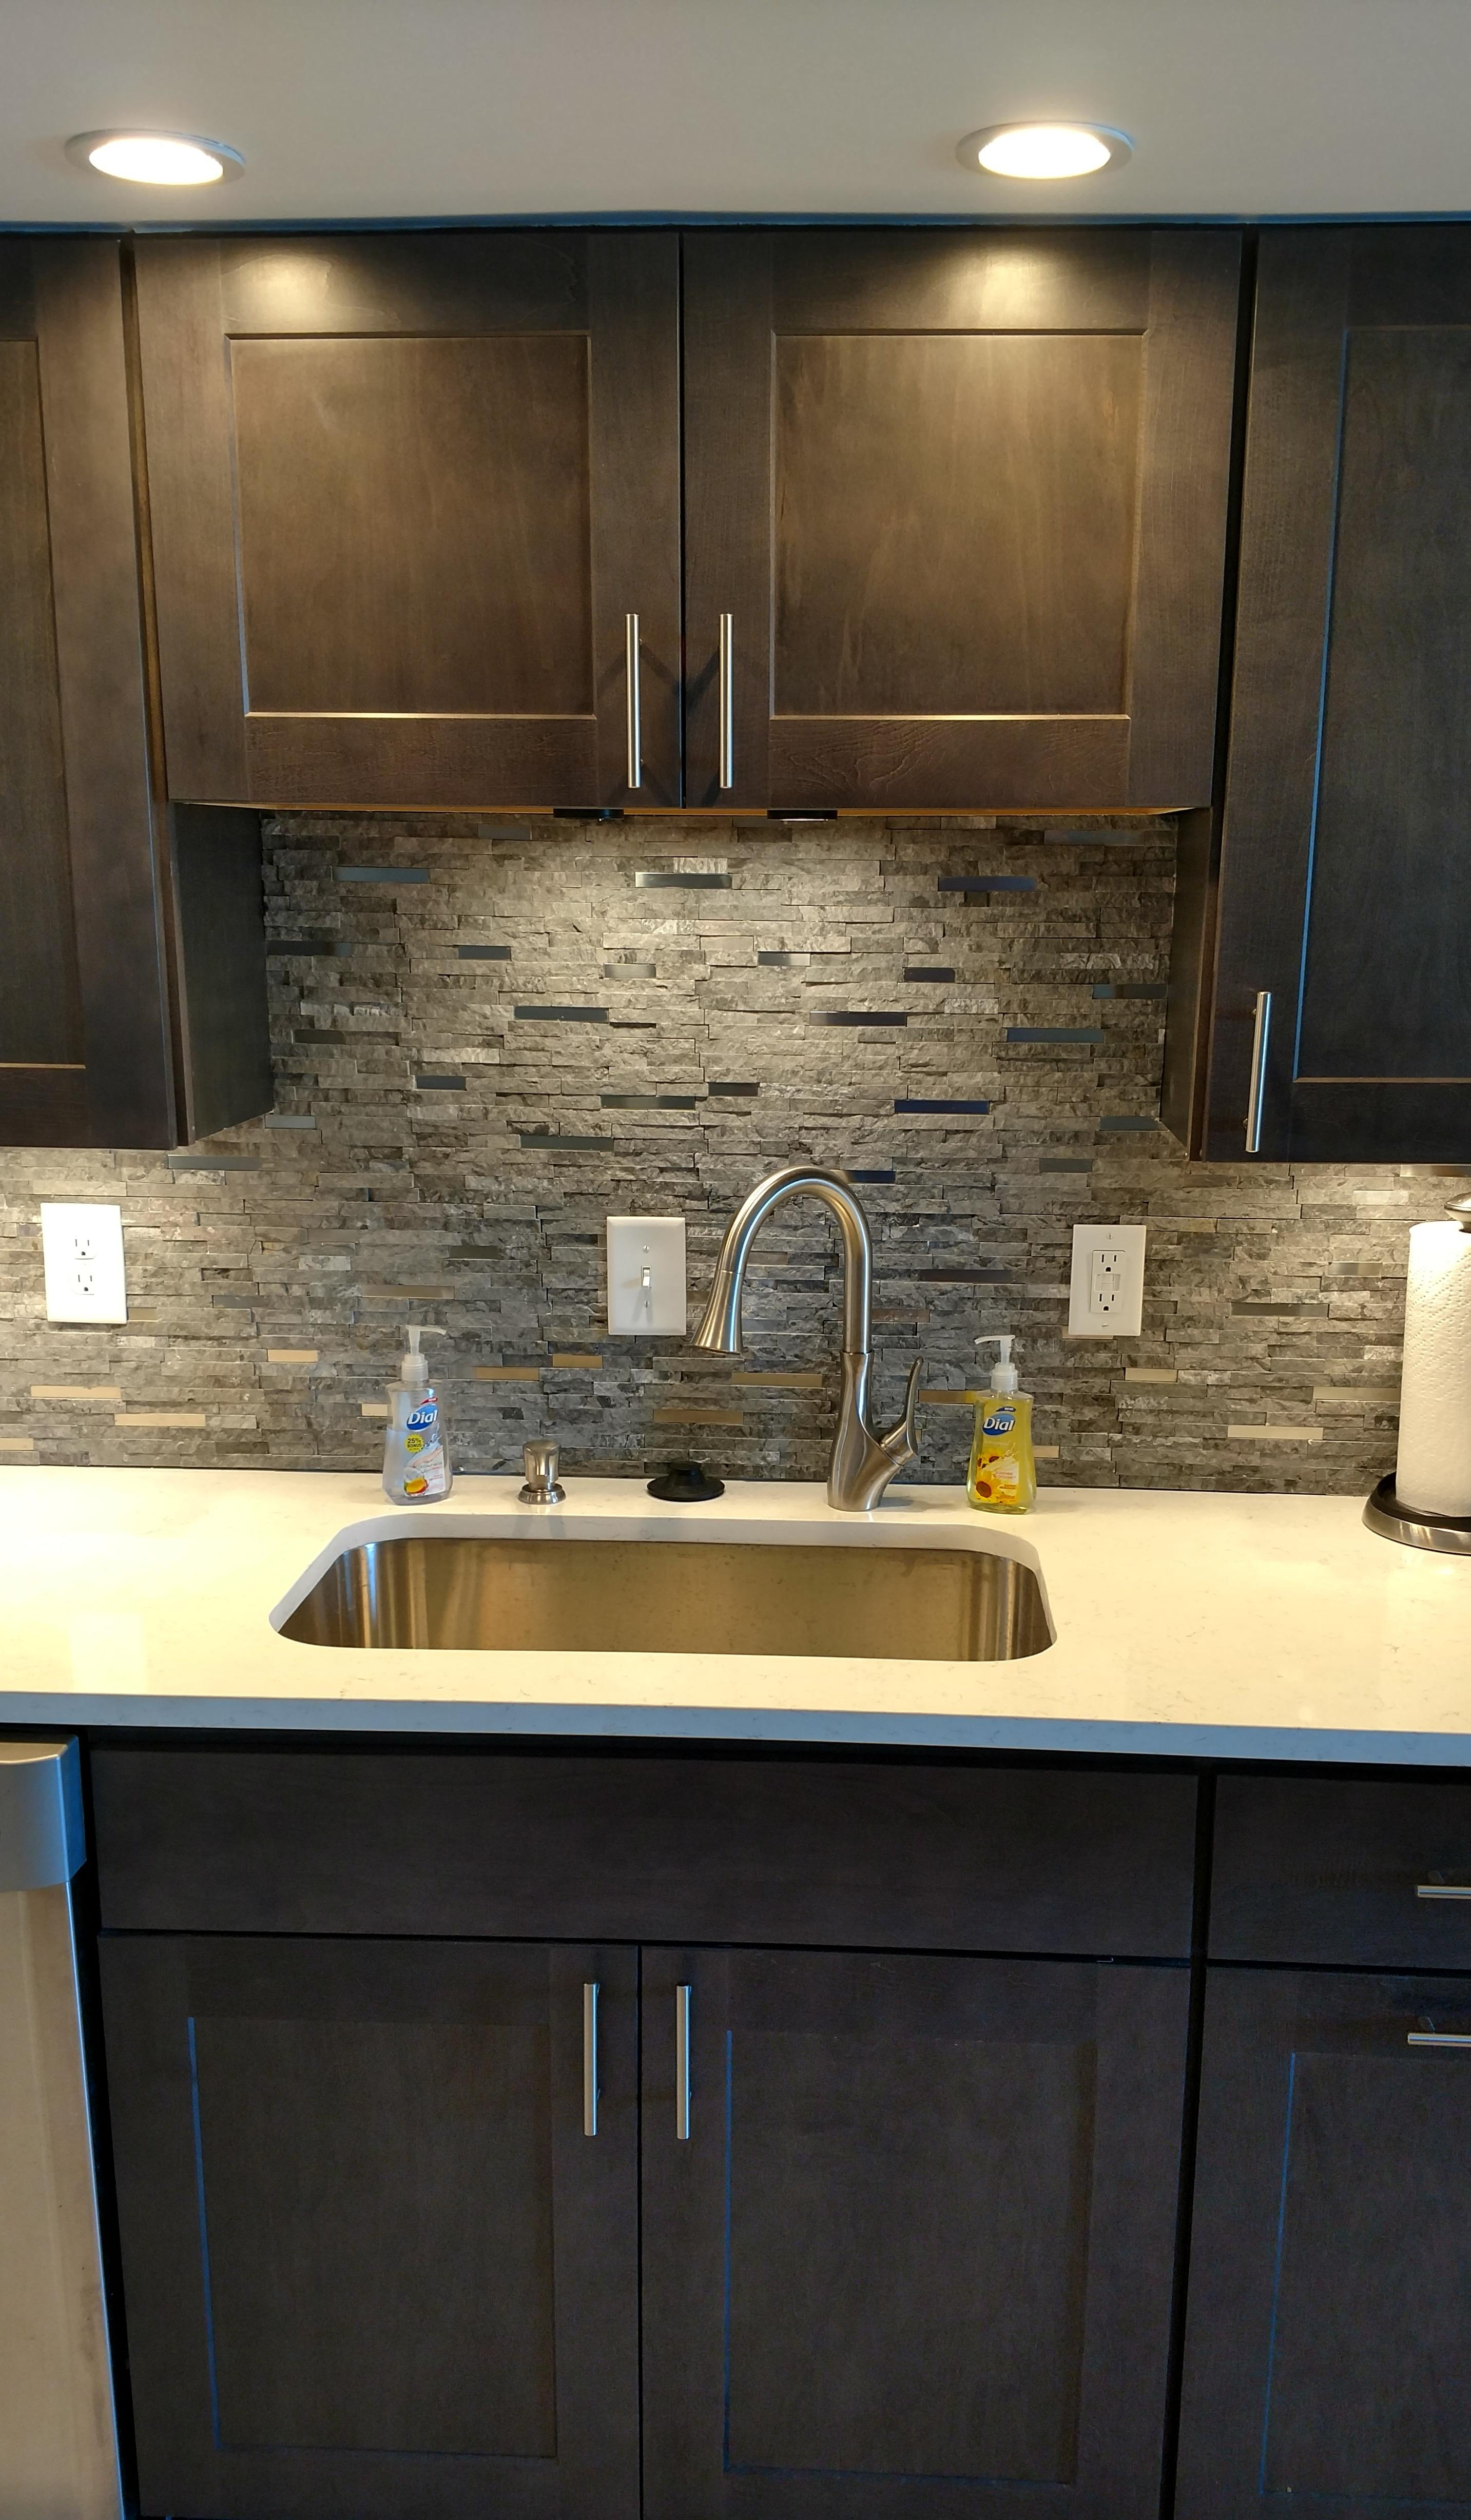 Accurate Upgrades Home Improvements LLC image 18